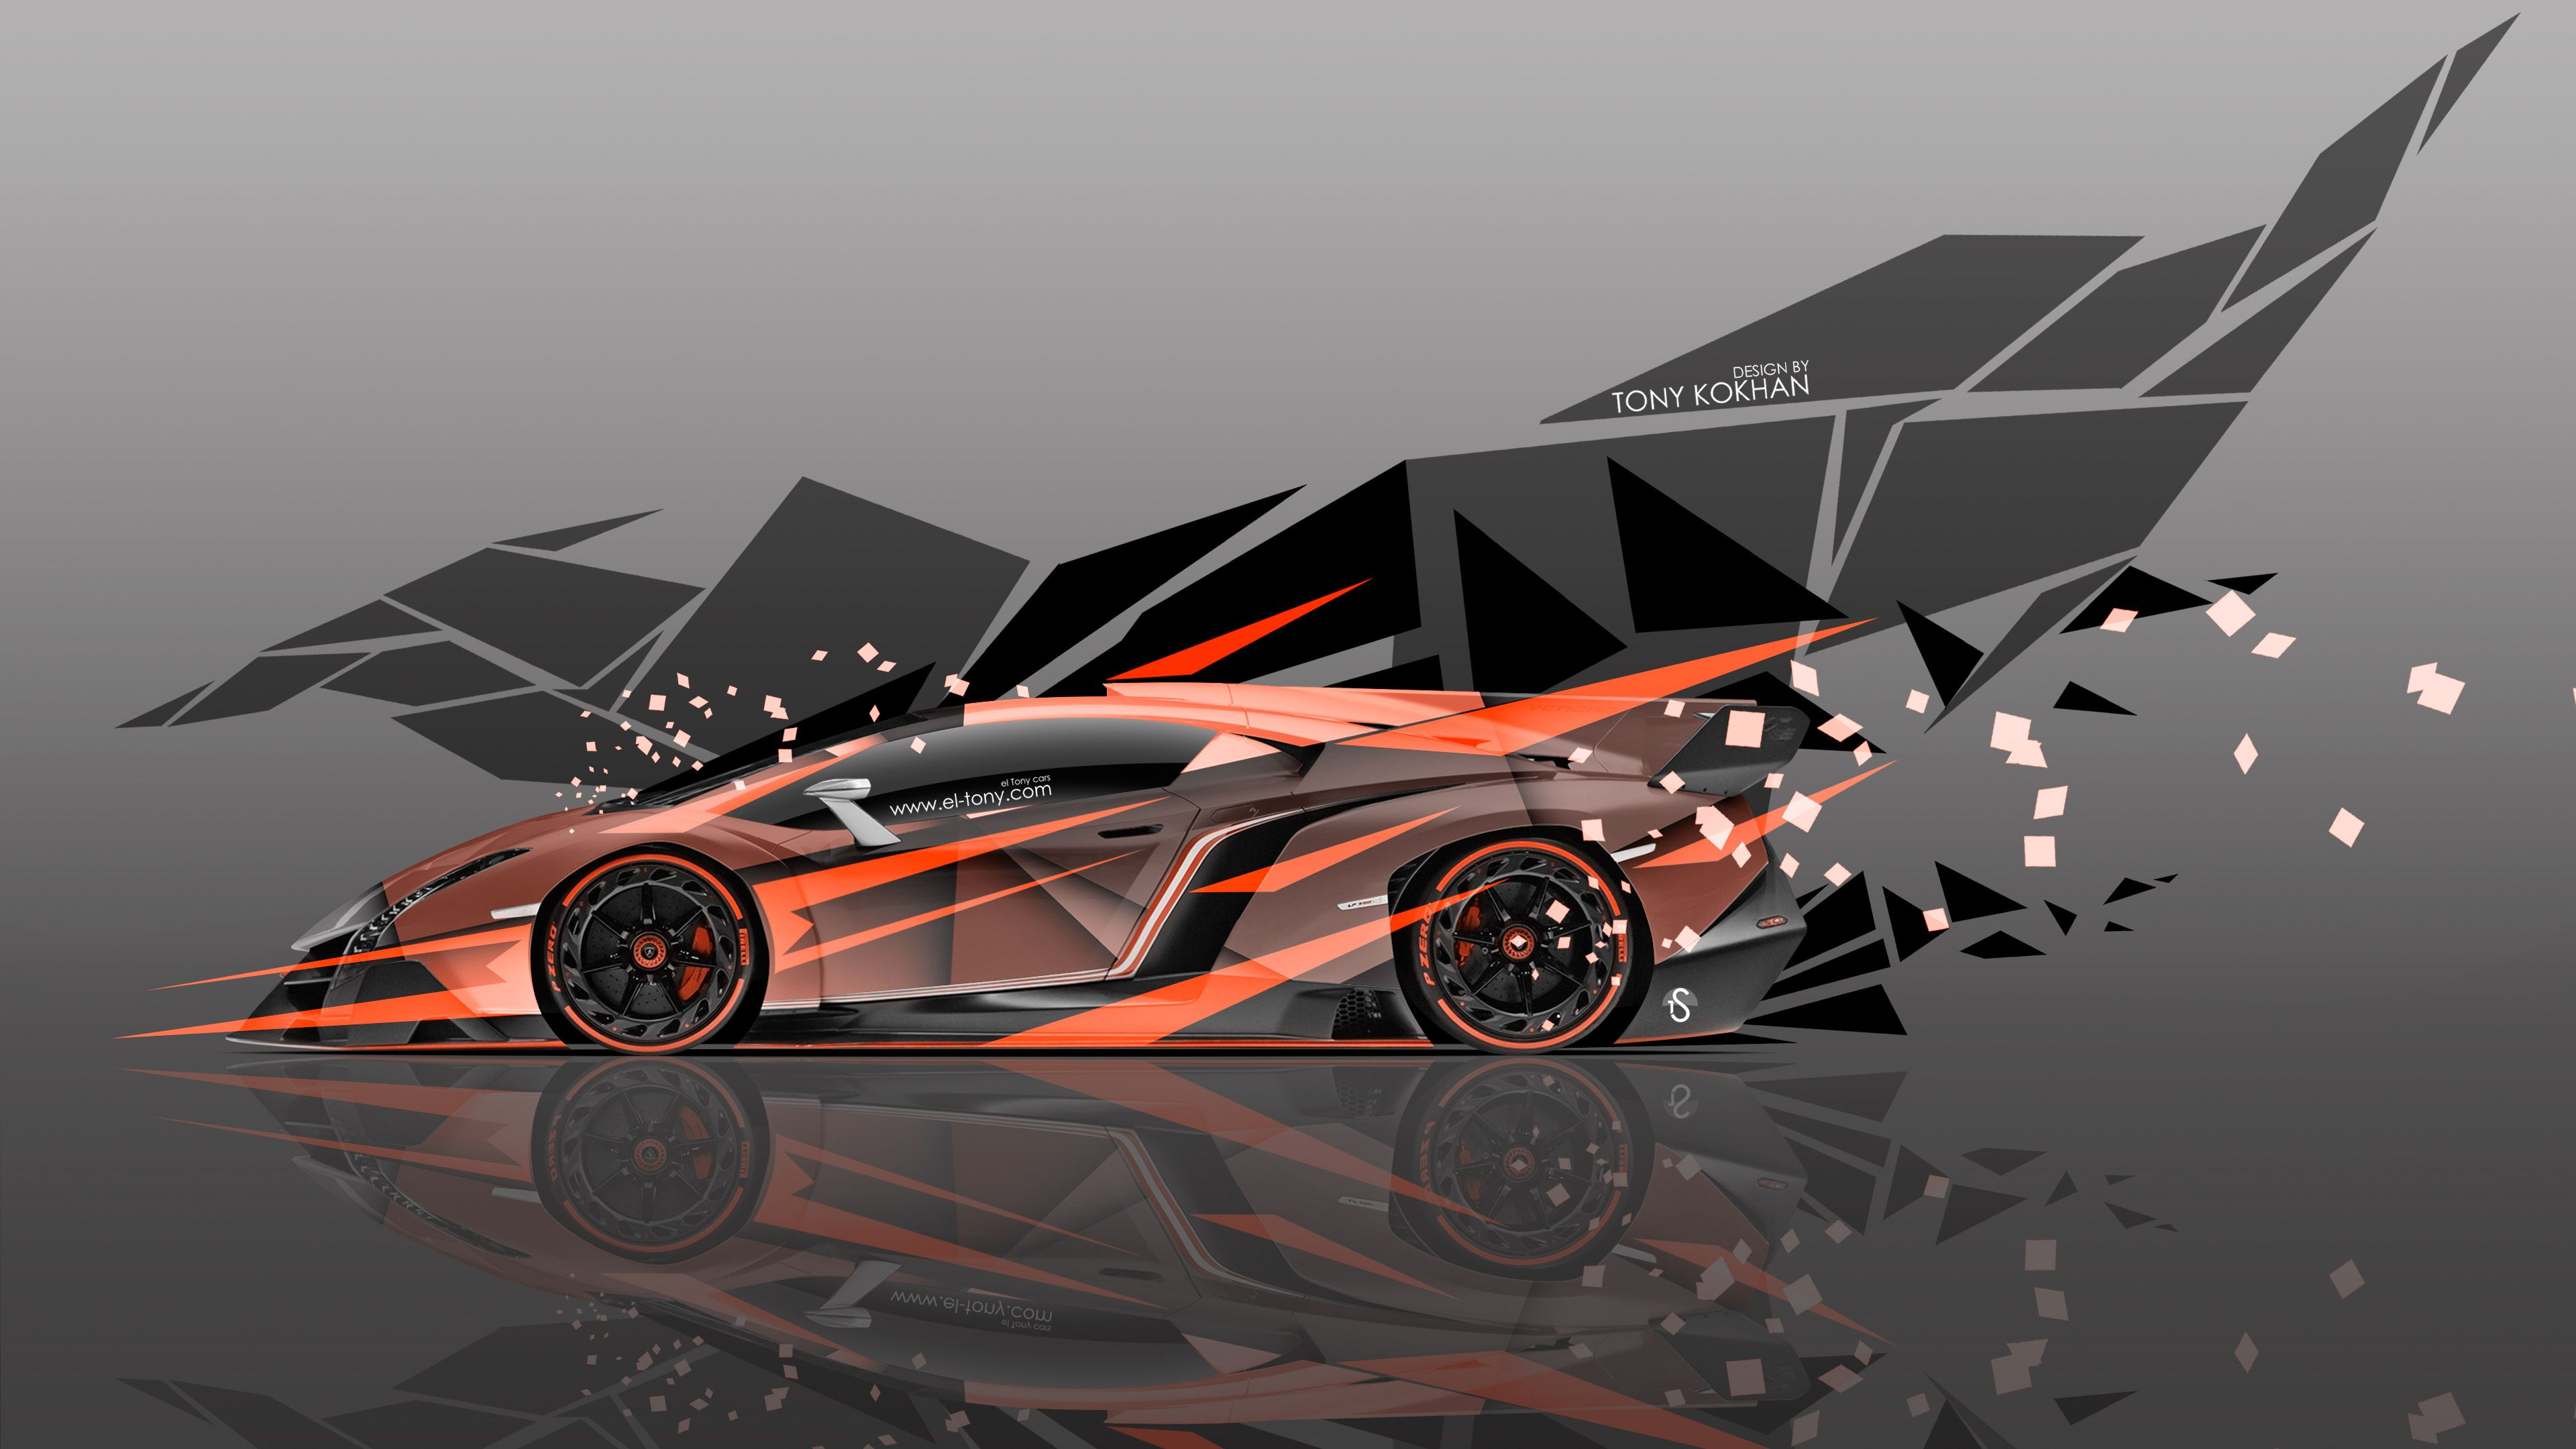 Lamborghini-Veneno-Side-Super-Abstract-Transformer-Aerography-Car ...